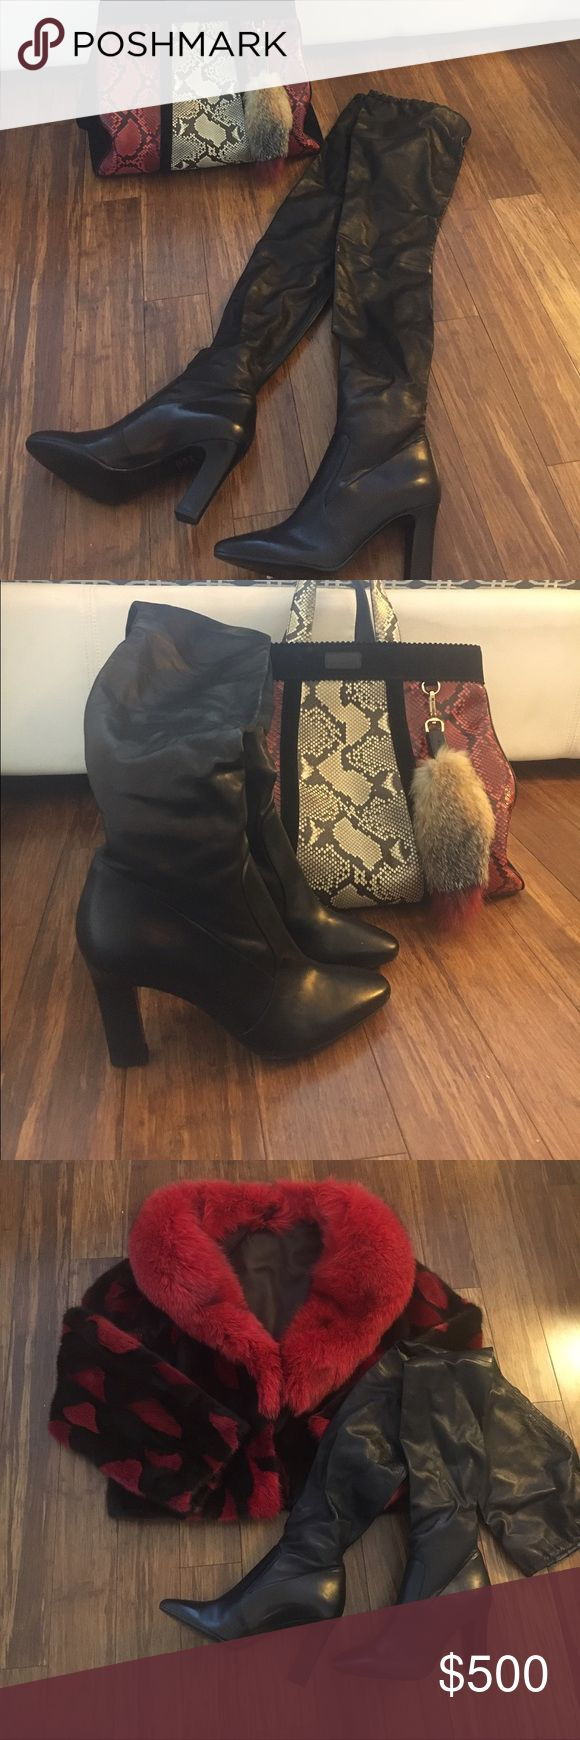 Stretch  thigh high Boots 100% Leather Over the knee boots/thigh high made from a stretch leather, heel height is 90mm. Italian made never worn Tamara Mellon Shoes Over the Knee Boots